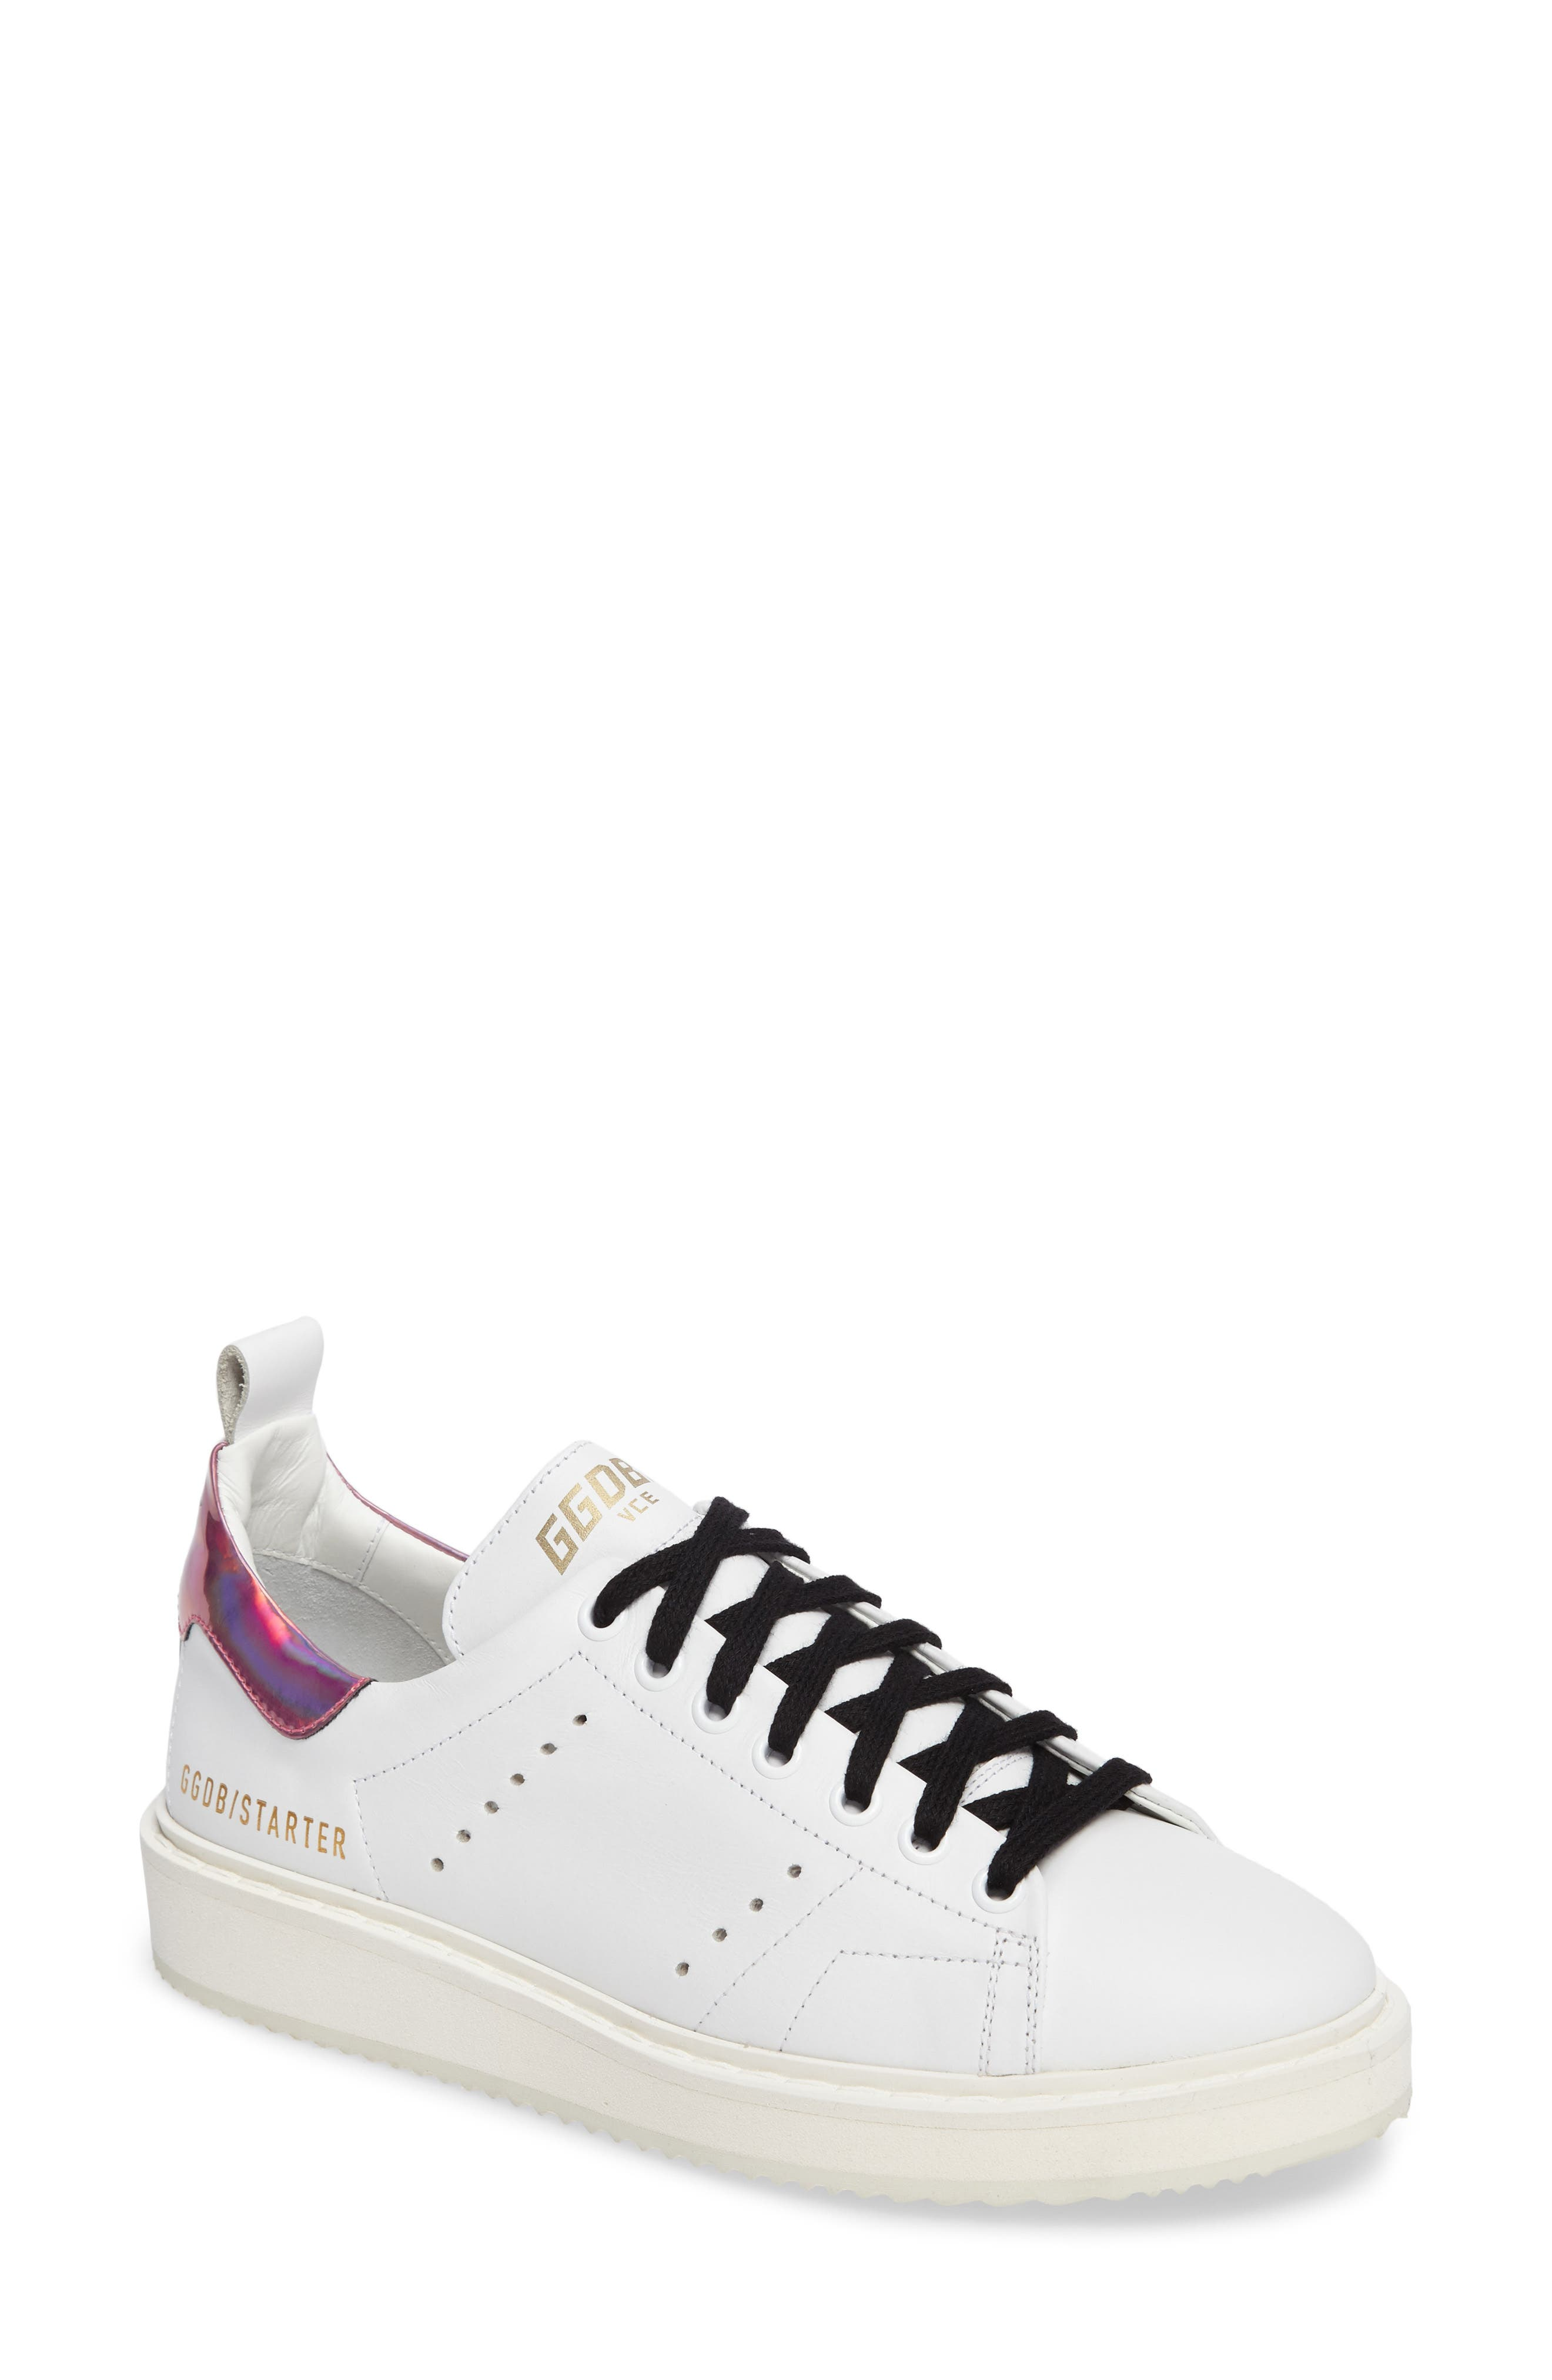 Starter Low Top Sneaker,                         Main,                         color, White/ Pink Jelly